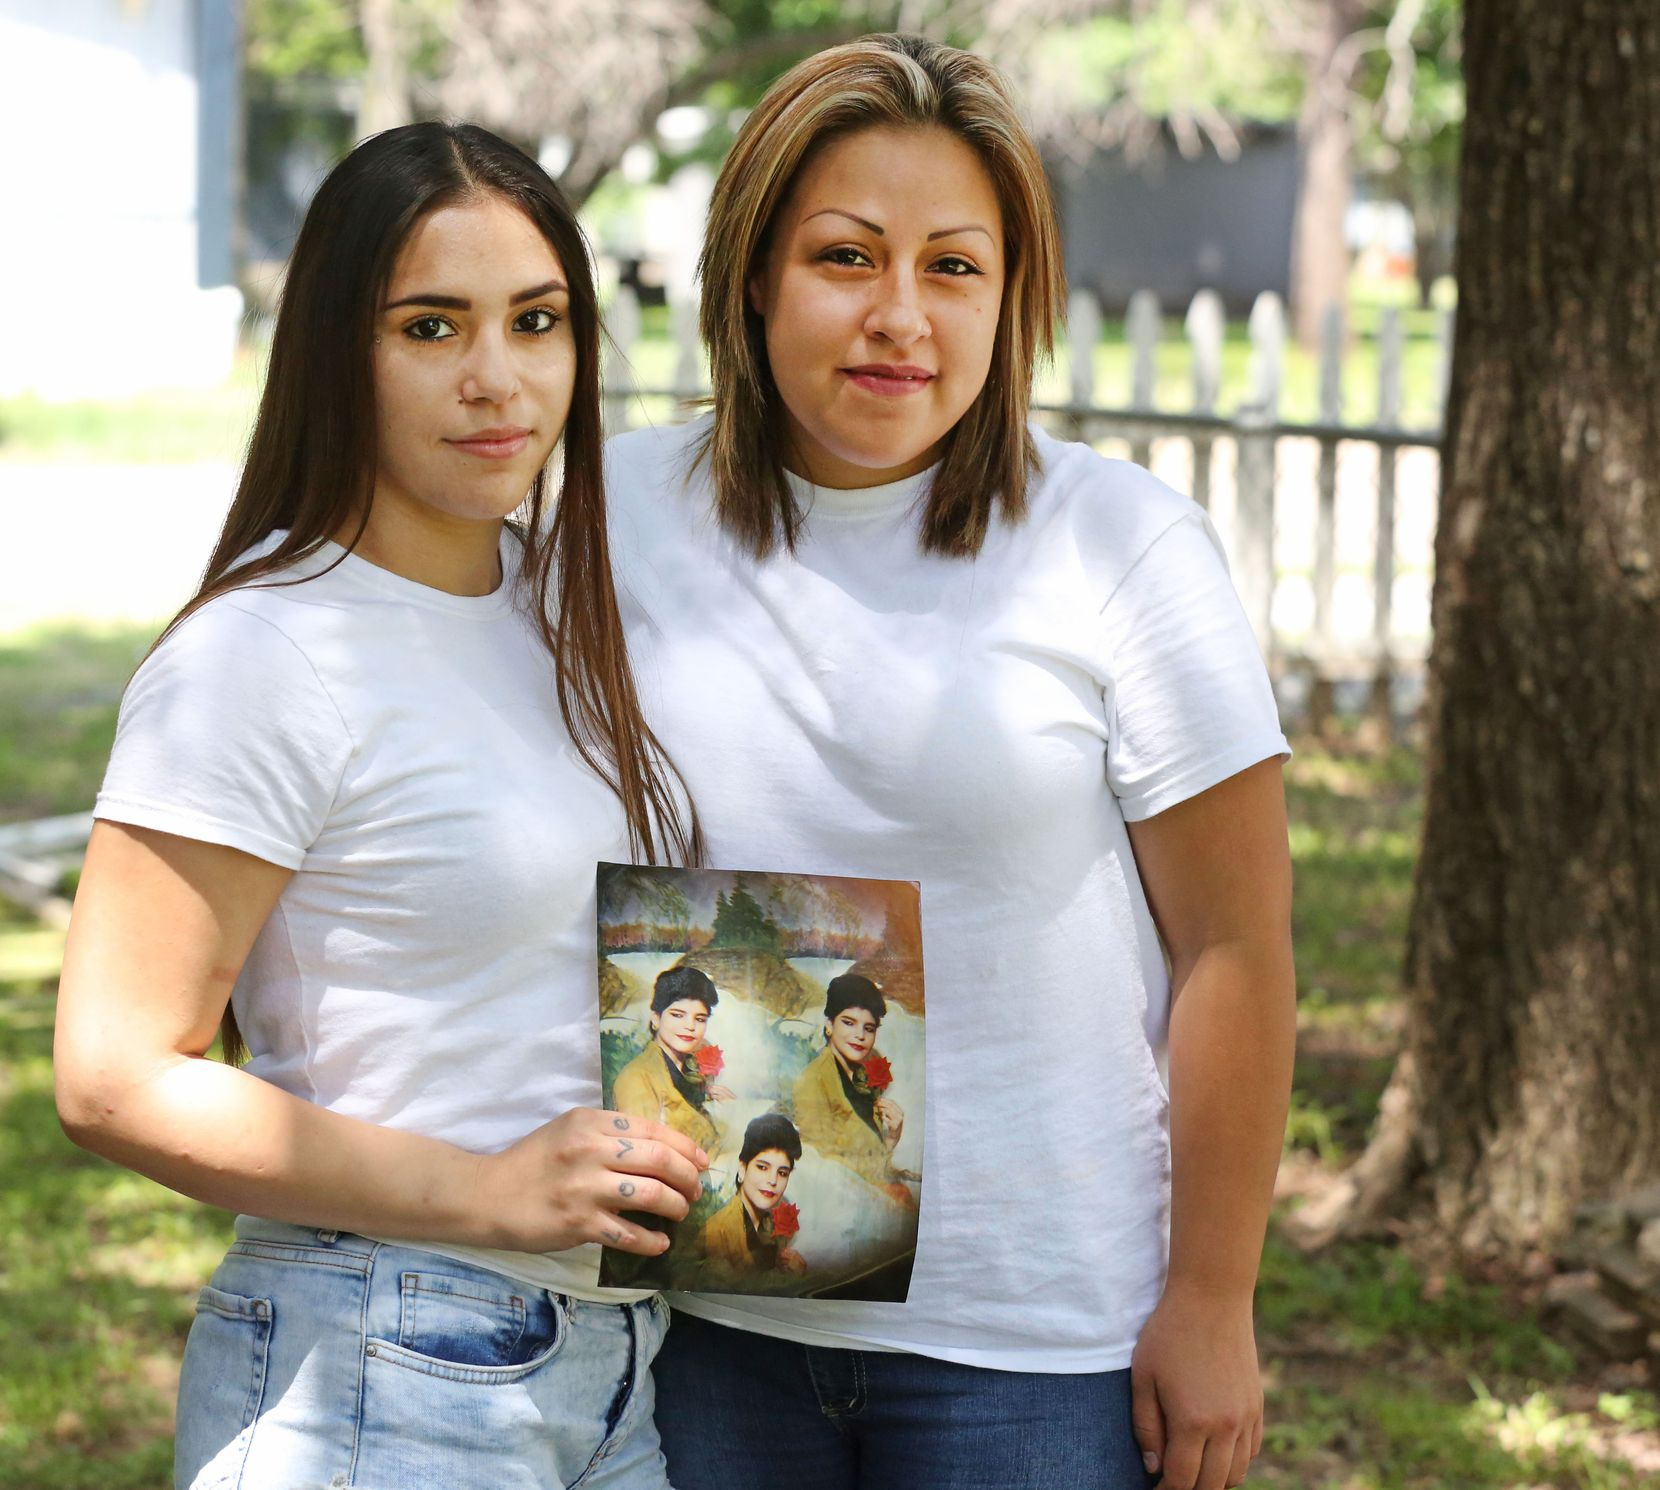 Daisy Serrano (left) and her cousin Dulce Dominguez reunited recently and immediately went to work trying to solve the murder of Daisy's mother.